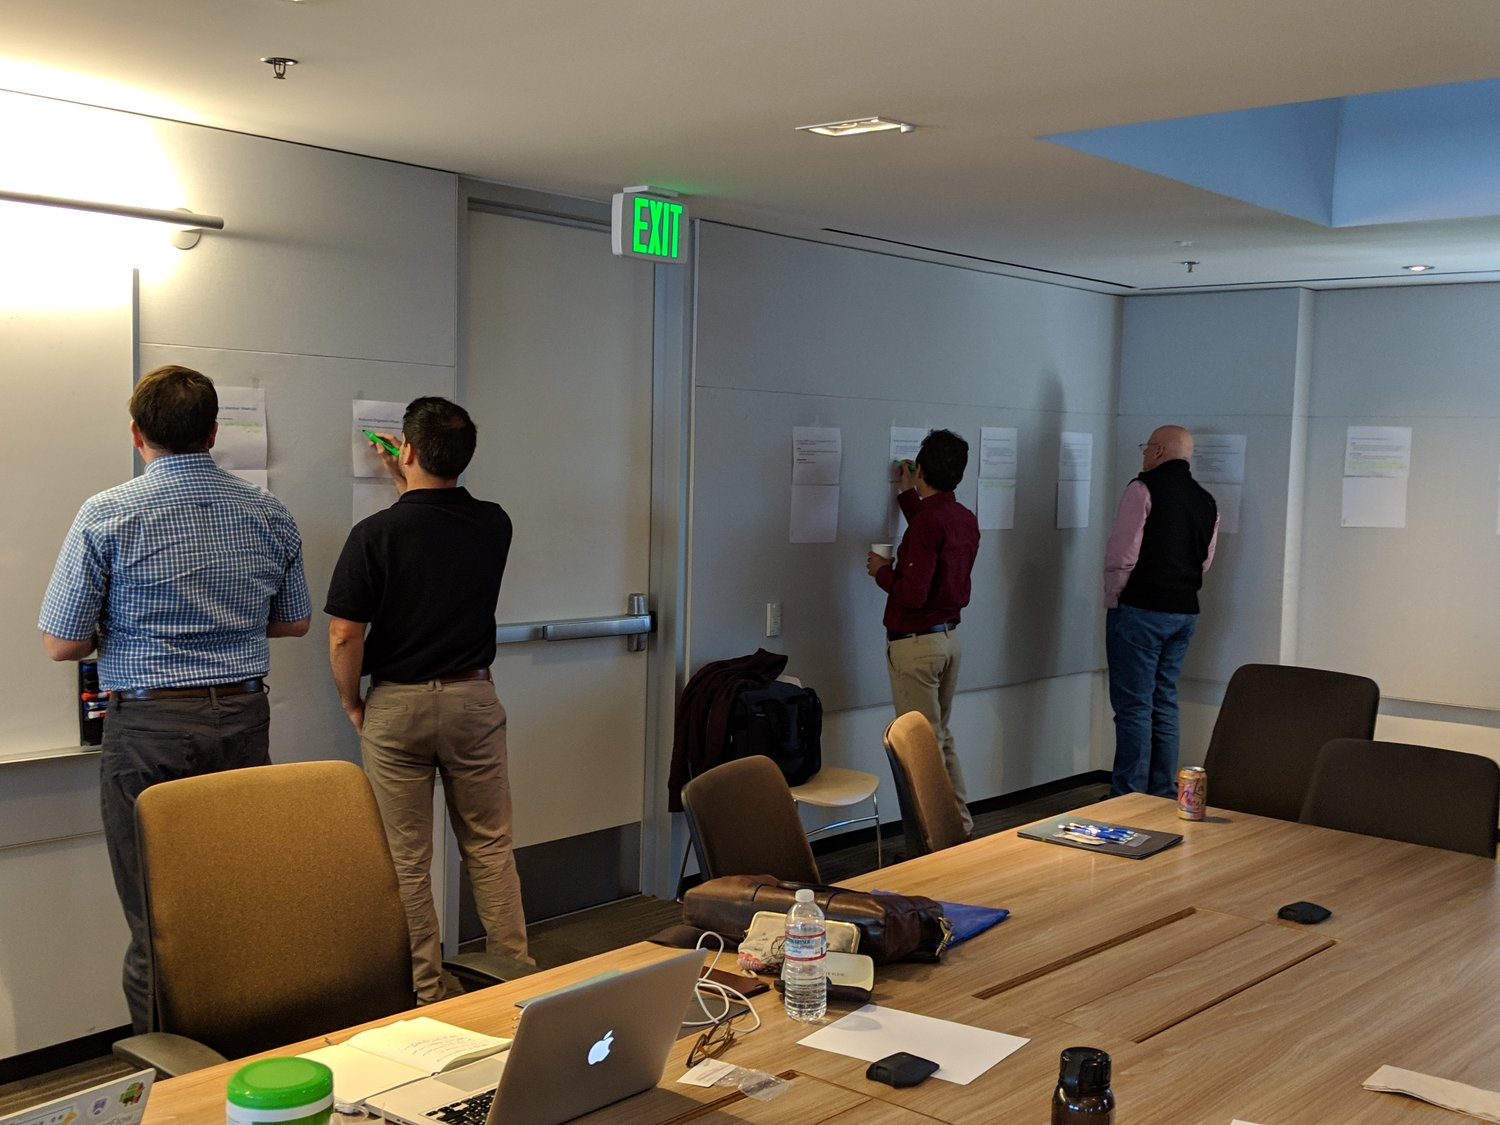 Back to work on our strategic planning session. No workshop is complete without flip charts and dry erase markers.